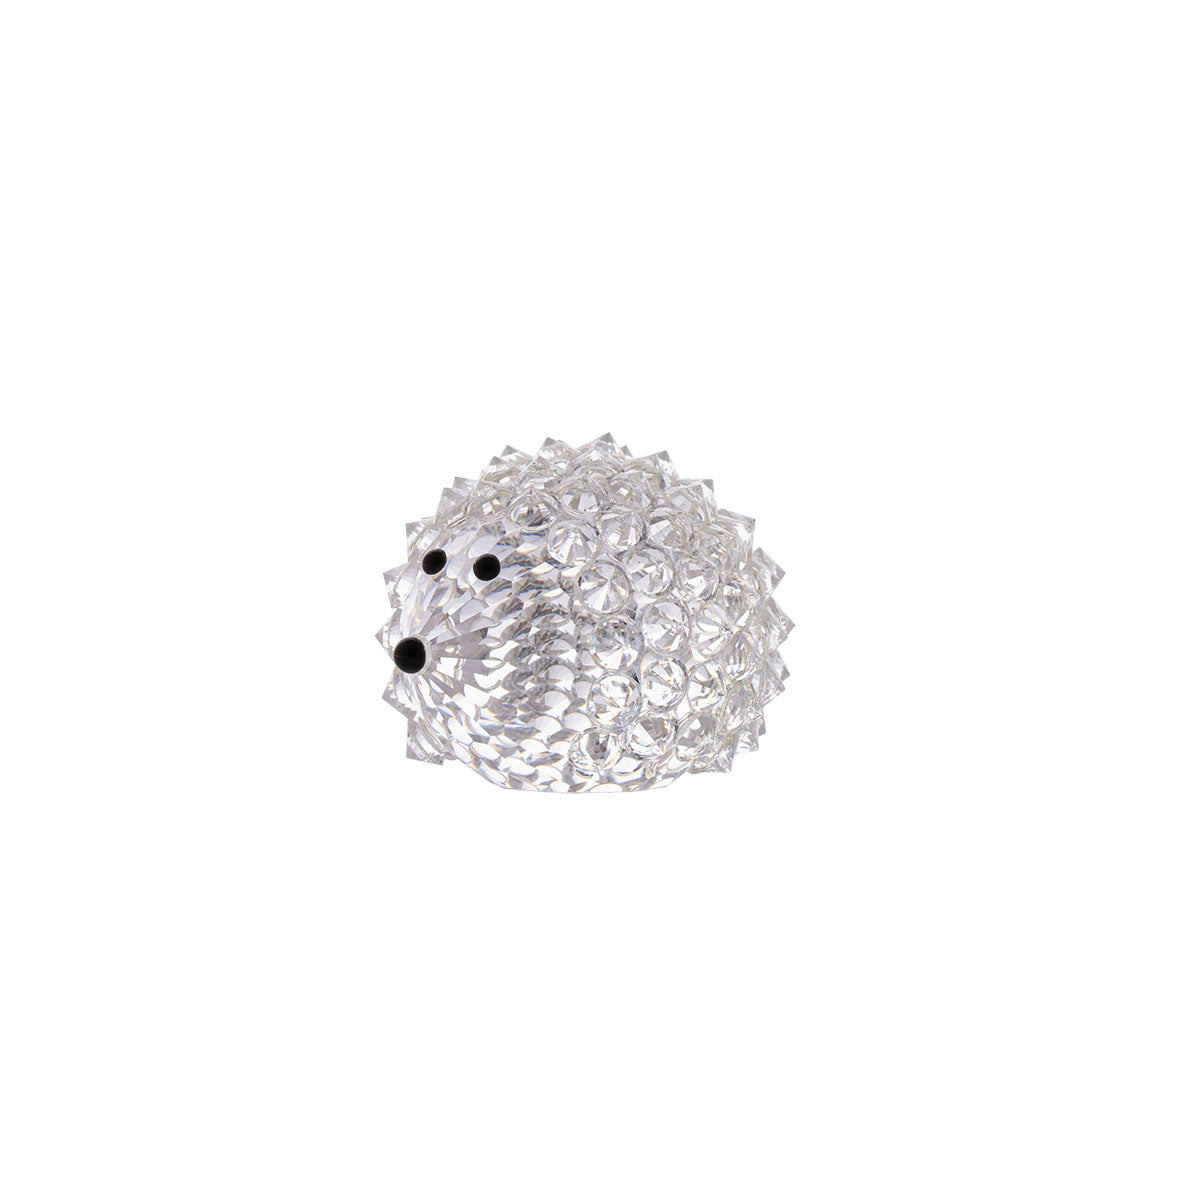 Hedgehog - Clear - Small